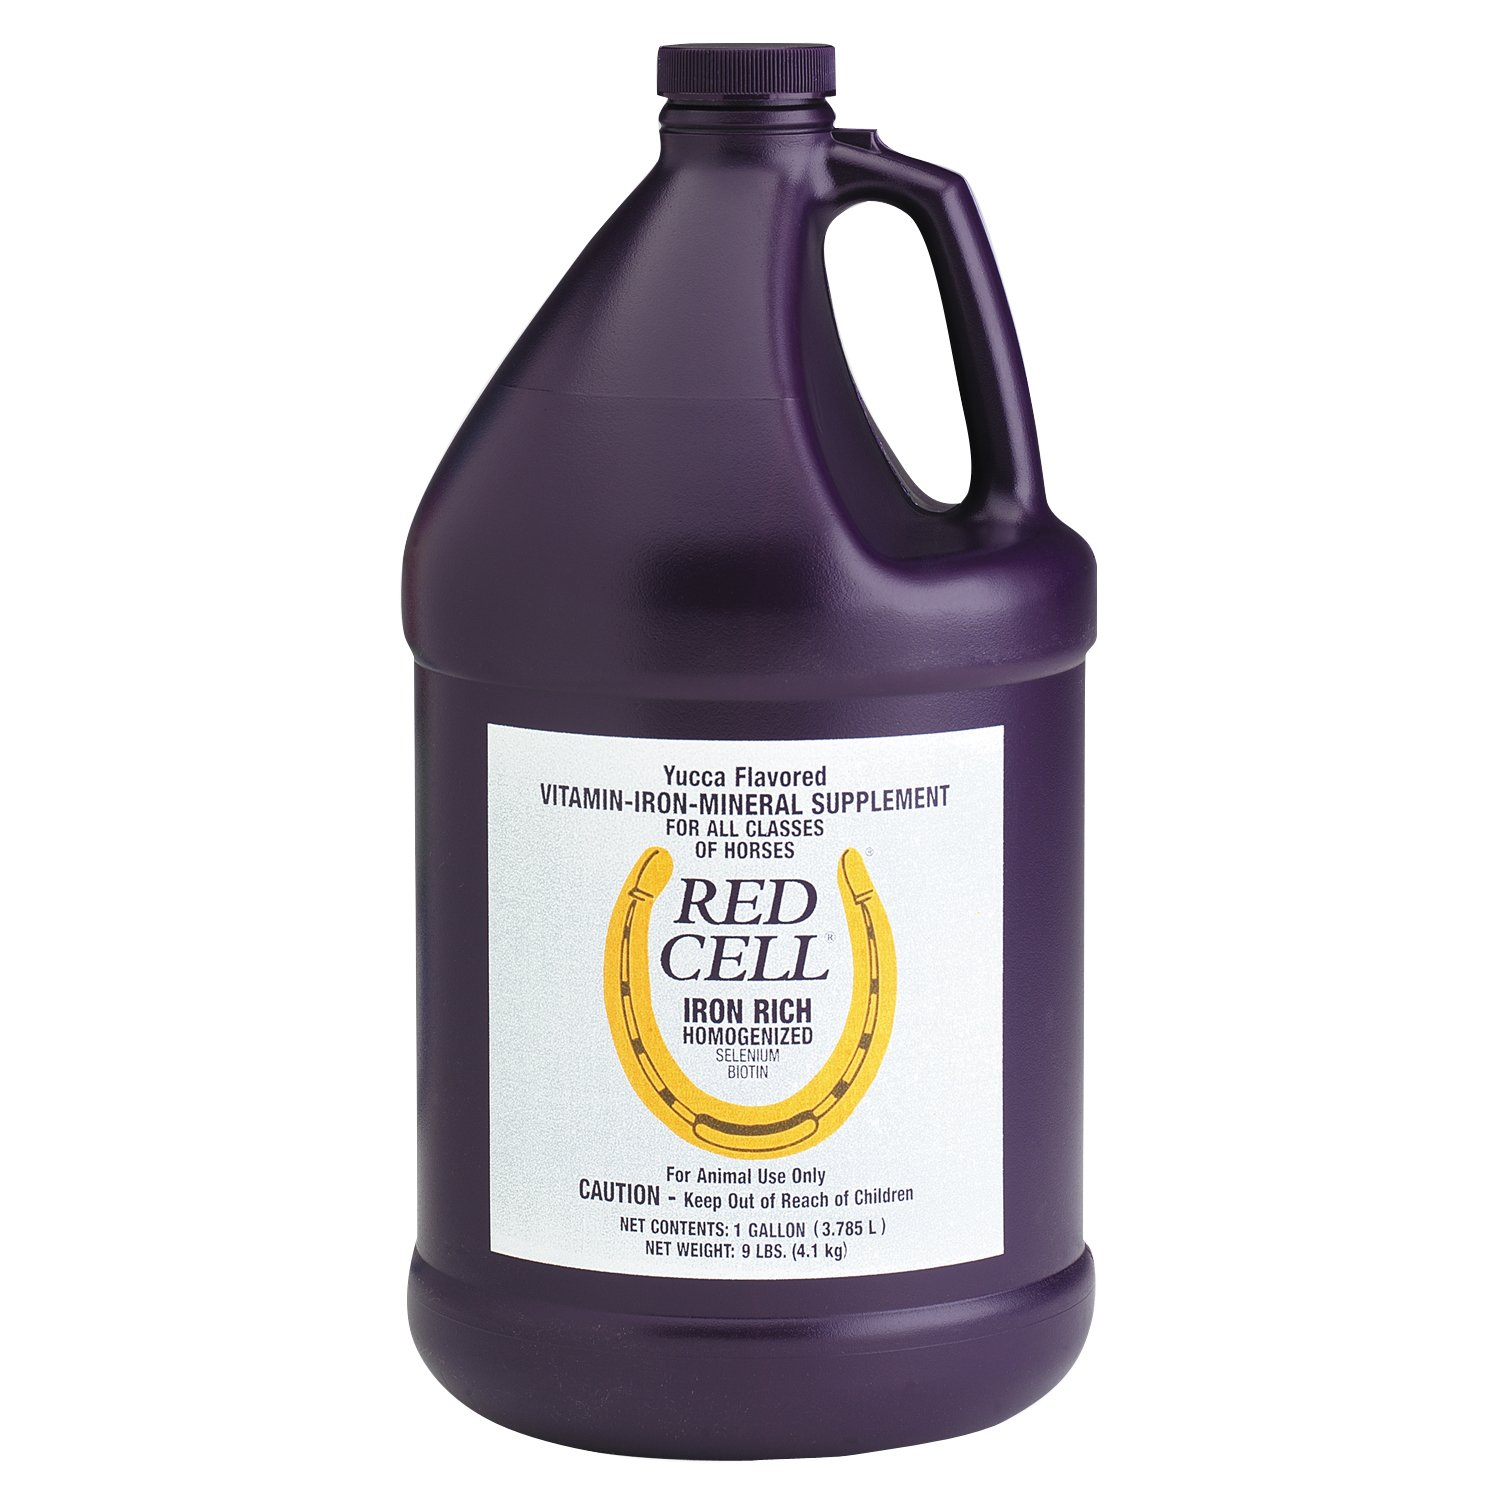 Horse Health Red Cell Iron-Rich Vitamin & Mineral Supplement for Horse, 1 gallon